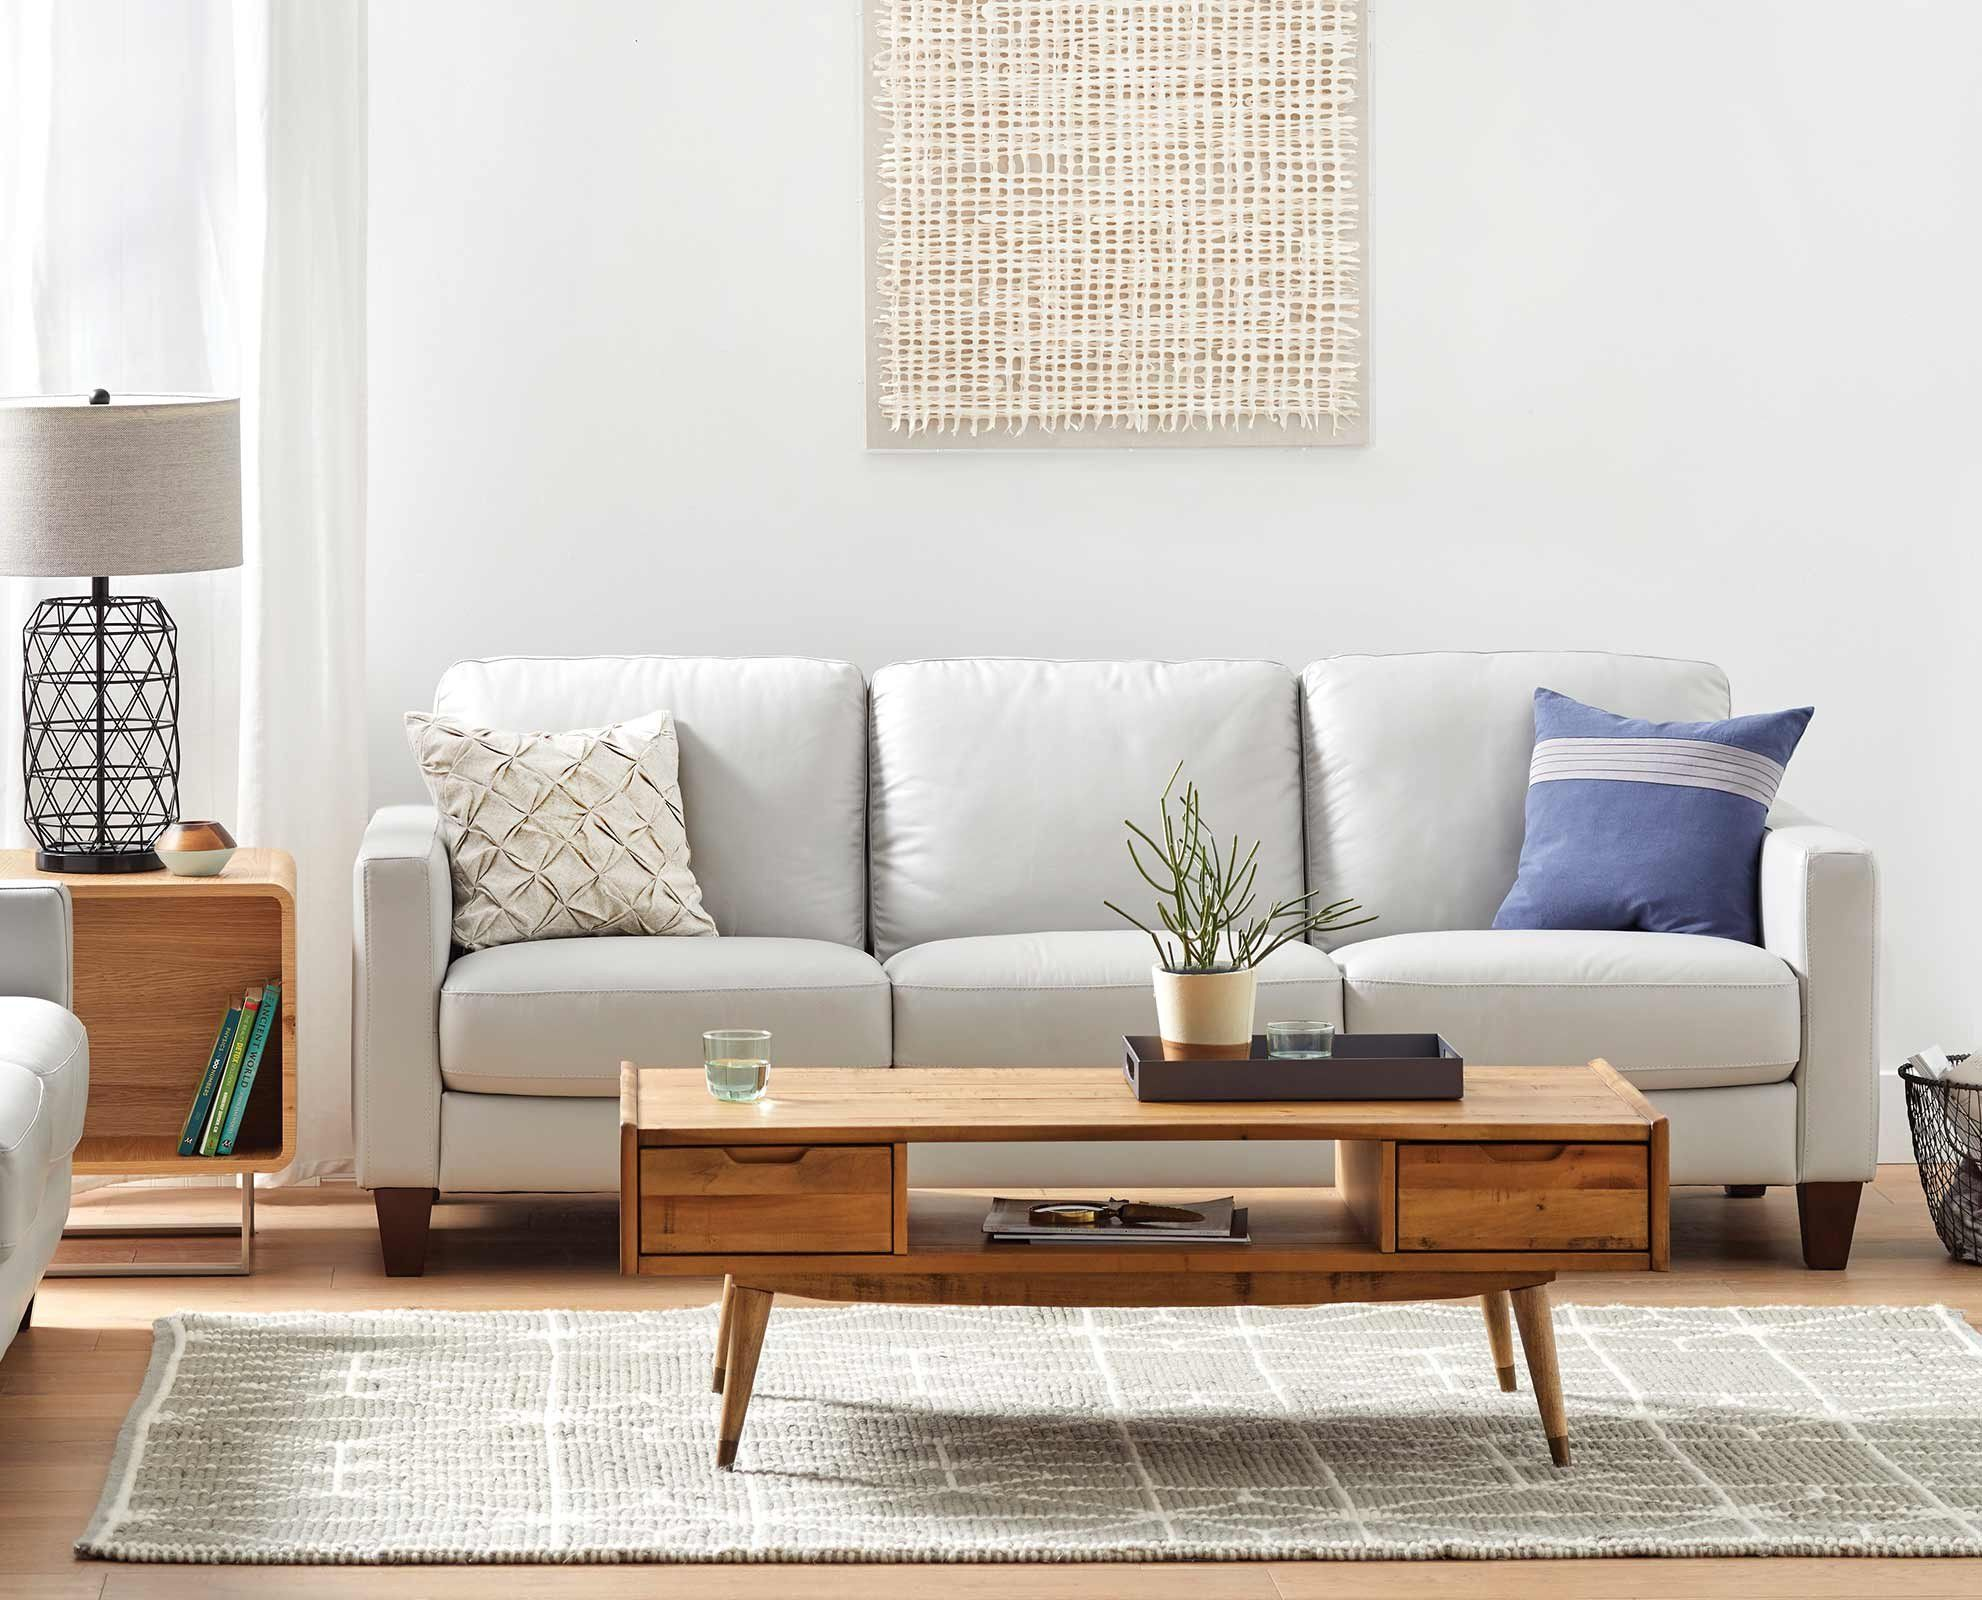 Interior Design Decor On Instagram Scandinavian Living Room By Holmstrom Gruppen Living Room Scandinavian Leather Sofa Living Room Sofa Scandinavian Style